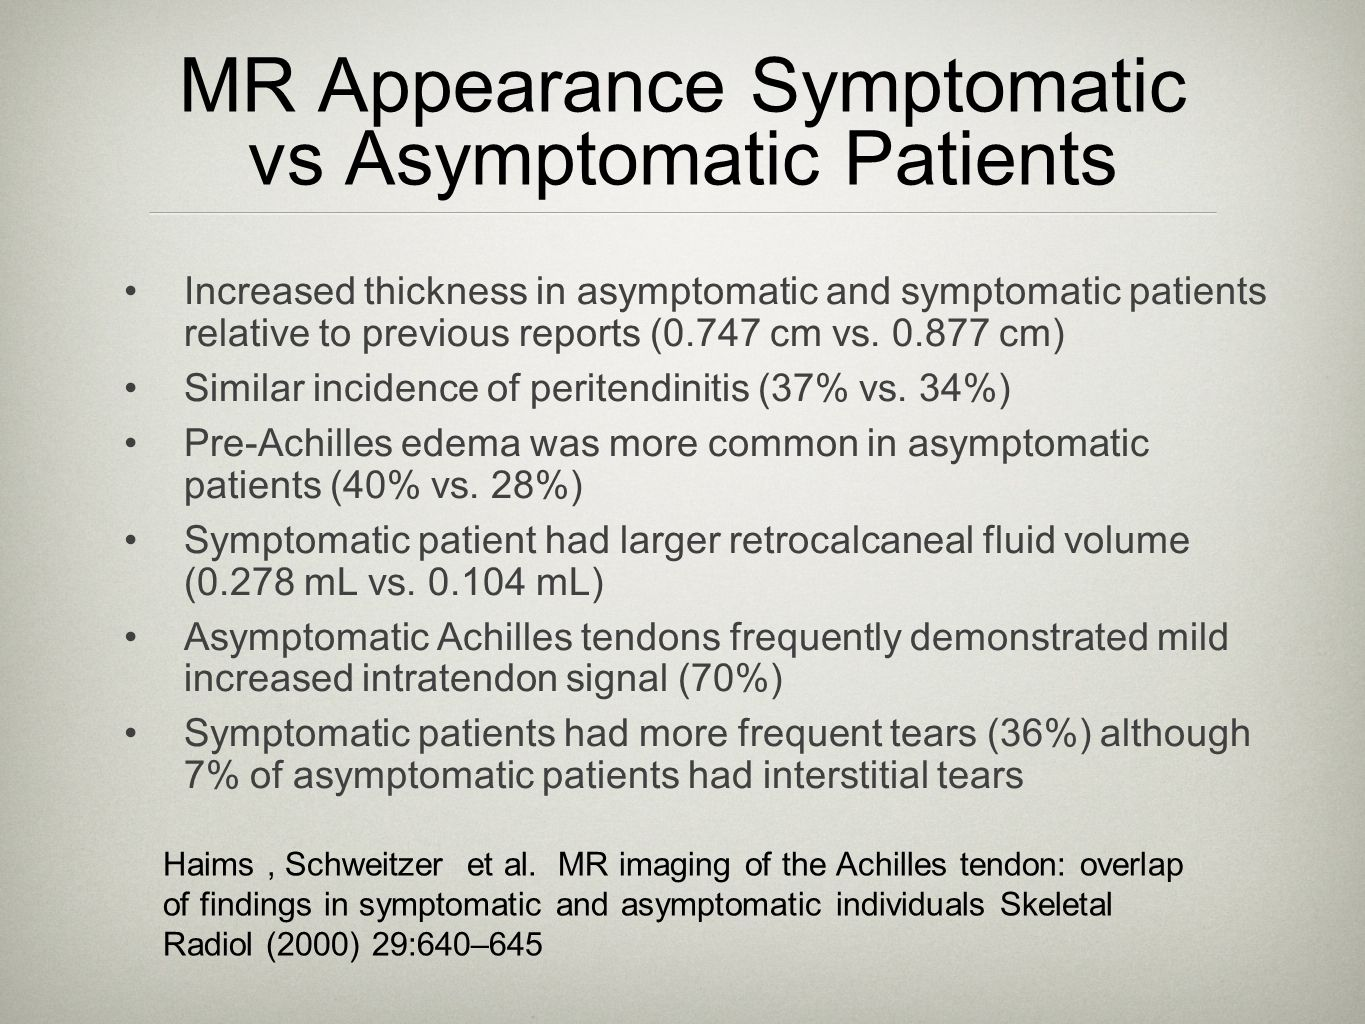 MR Appearance Symptomatic vs Asymptomatic Patients